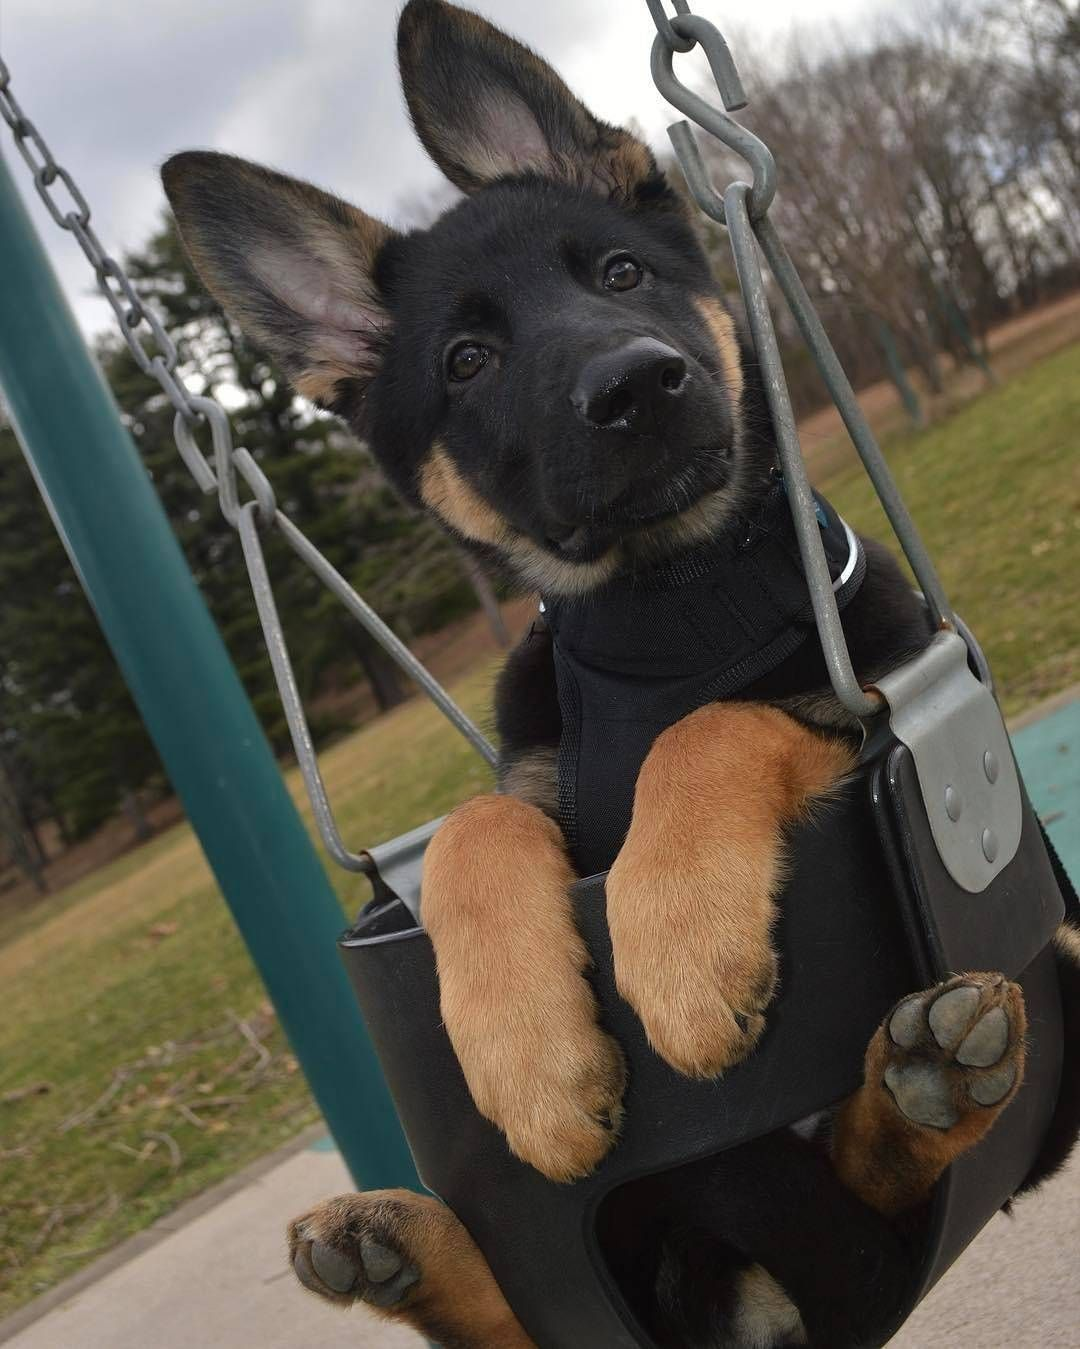 19.7k Likes, 331 Comments The German Shepherd Dog (GSD